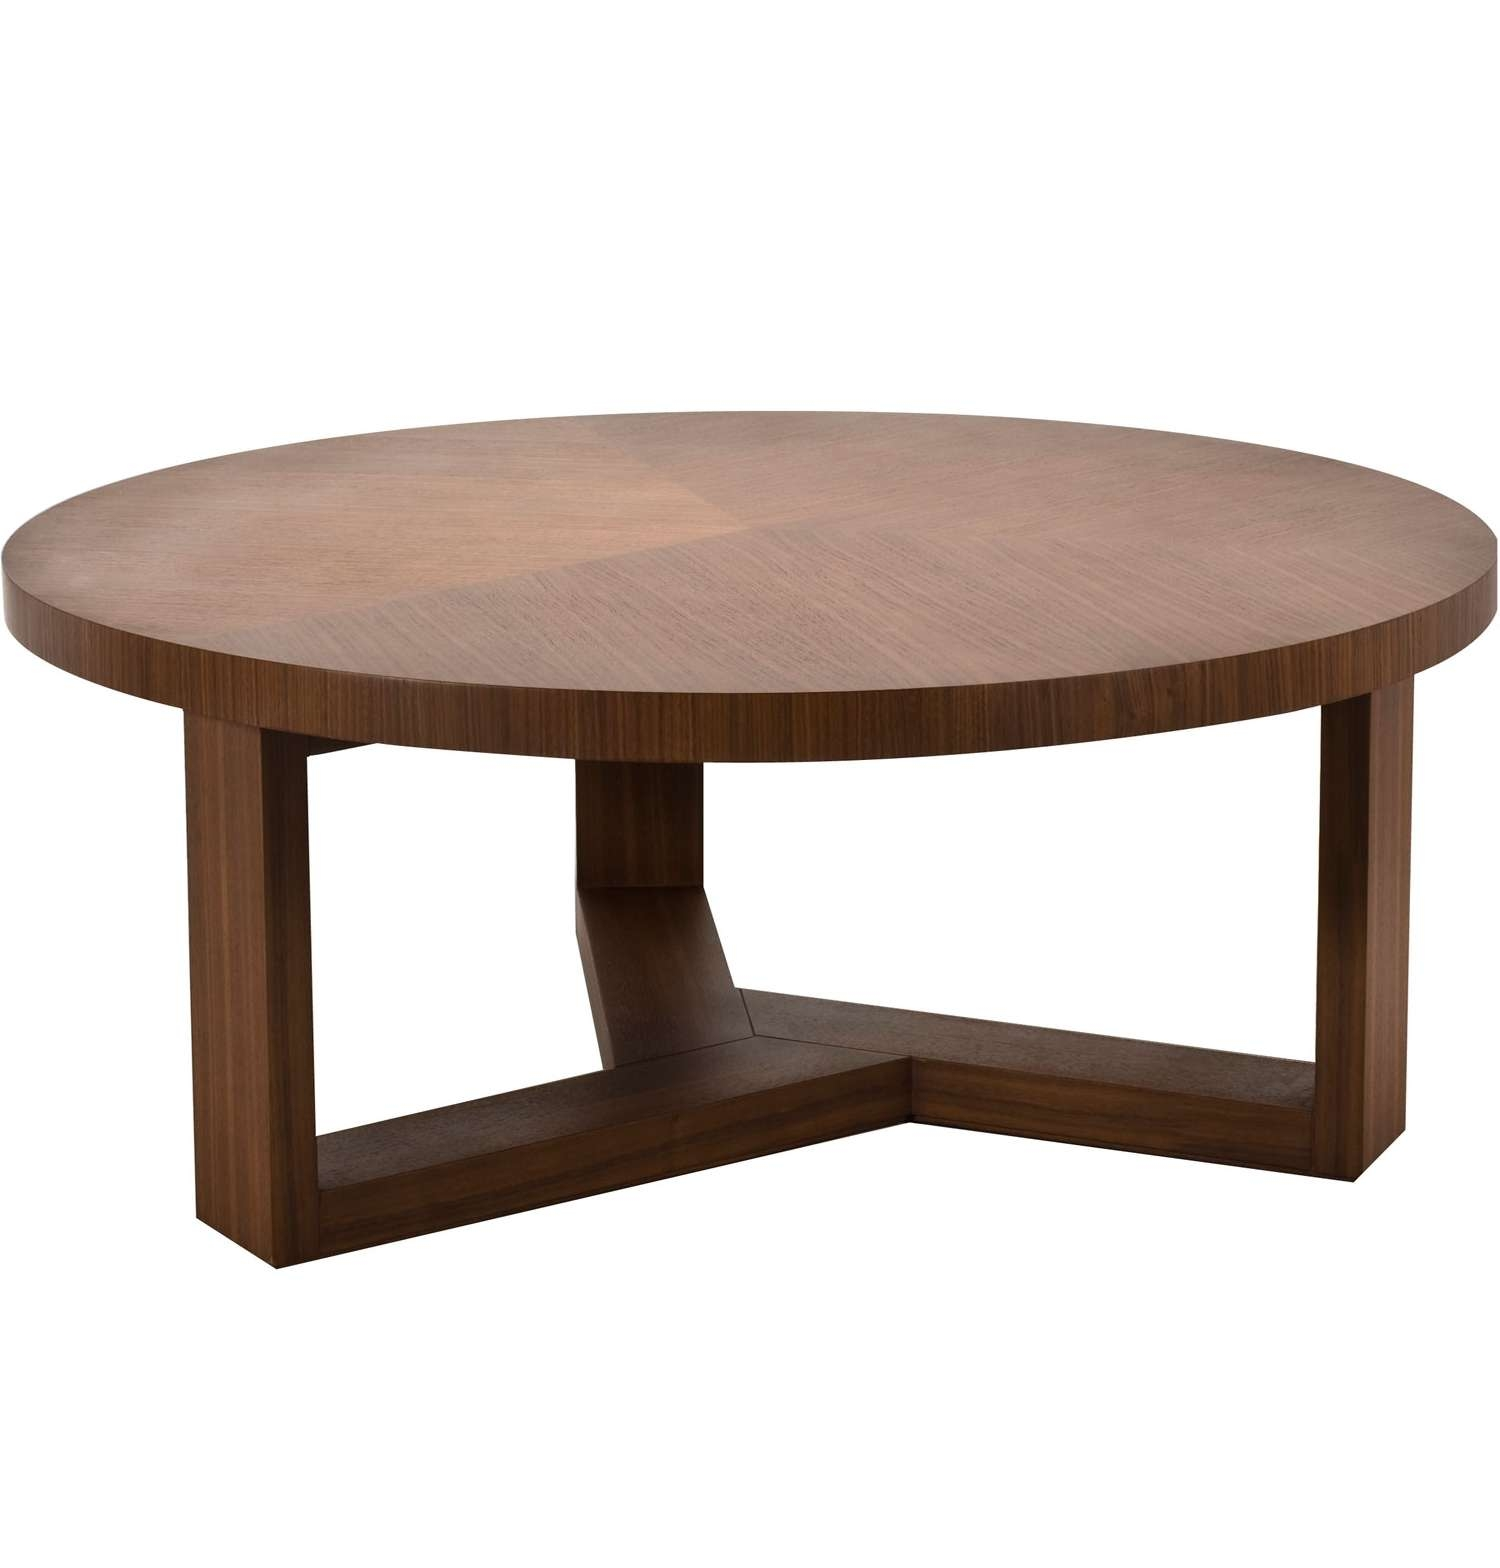 Preferred Dark Wood Round Coffee Tables With Regard To Coffee Tables : Round Table Coffee Glass Top Circle Square And (View 19 of 20)